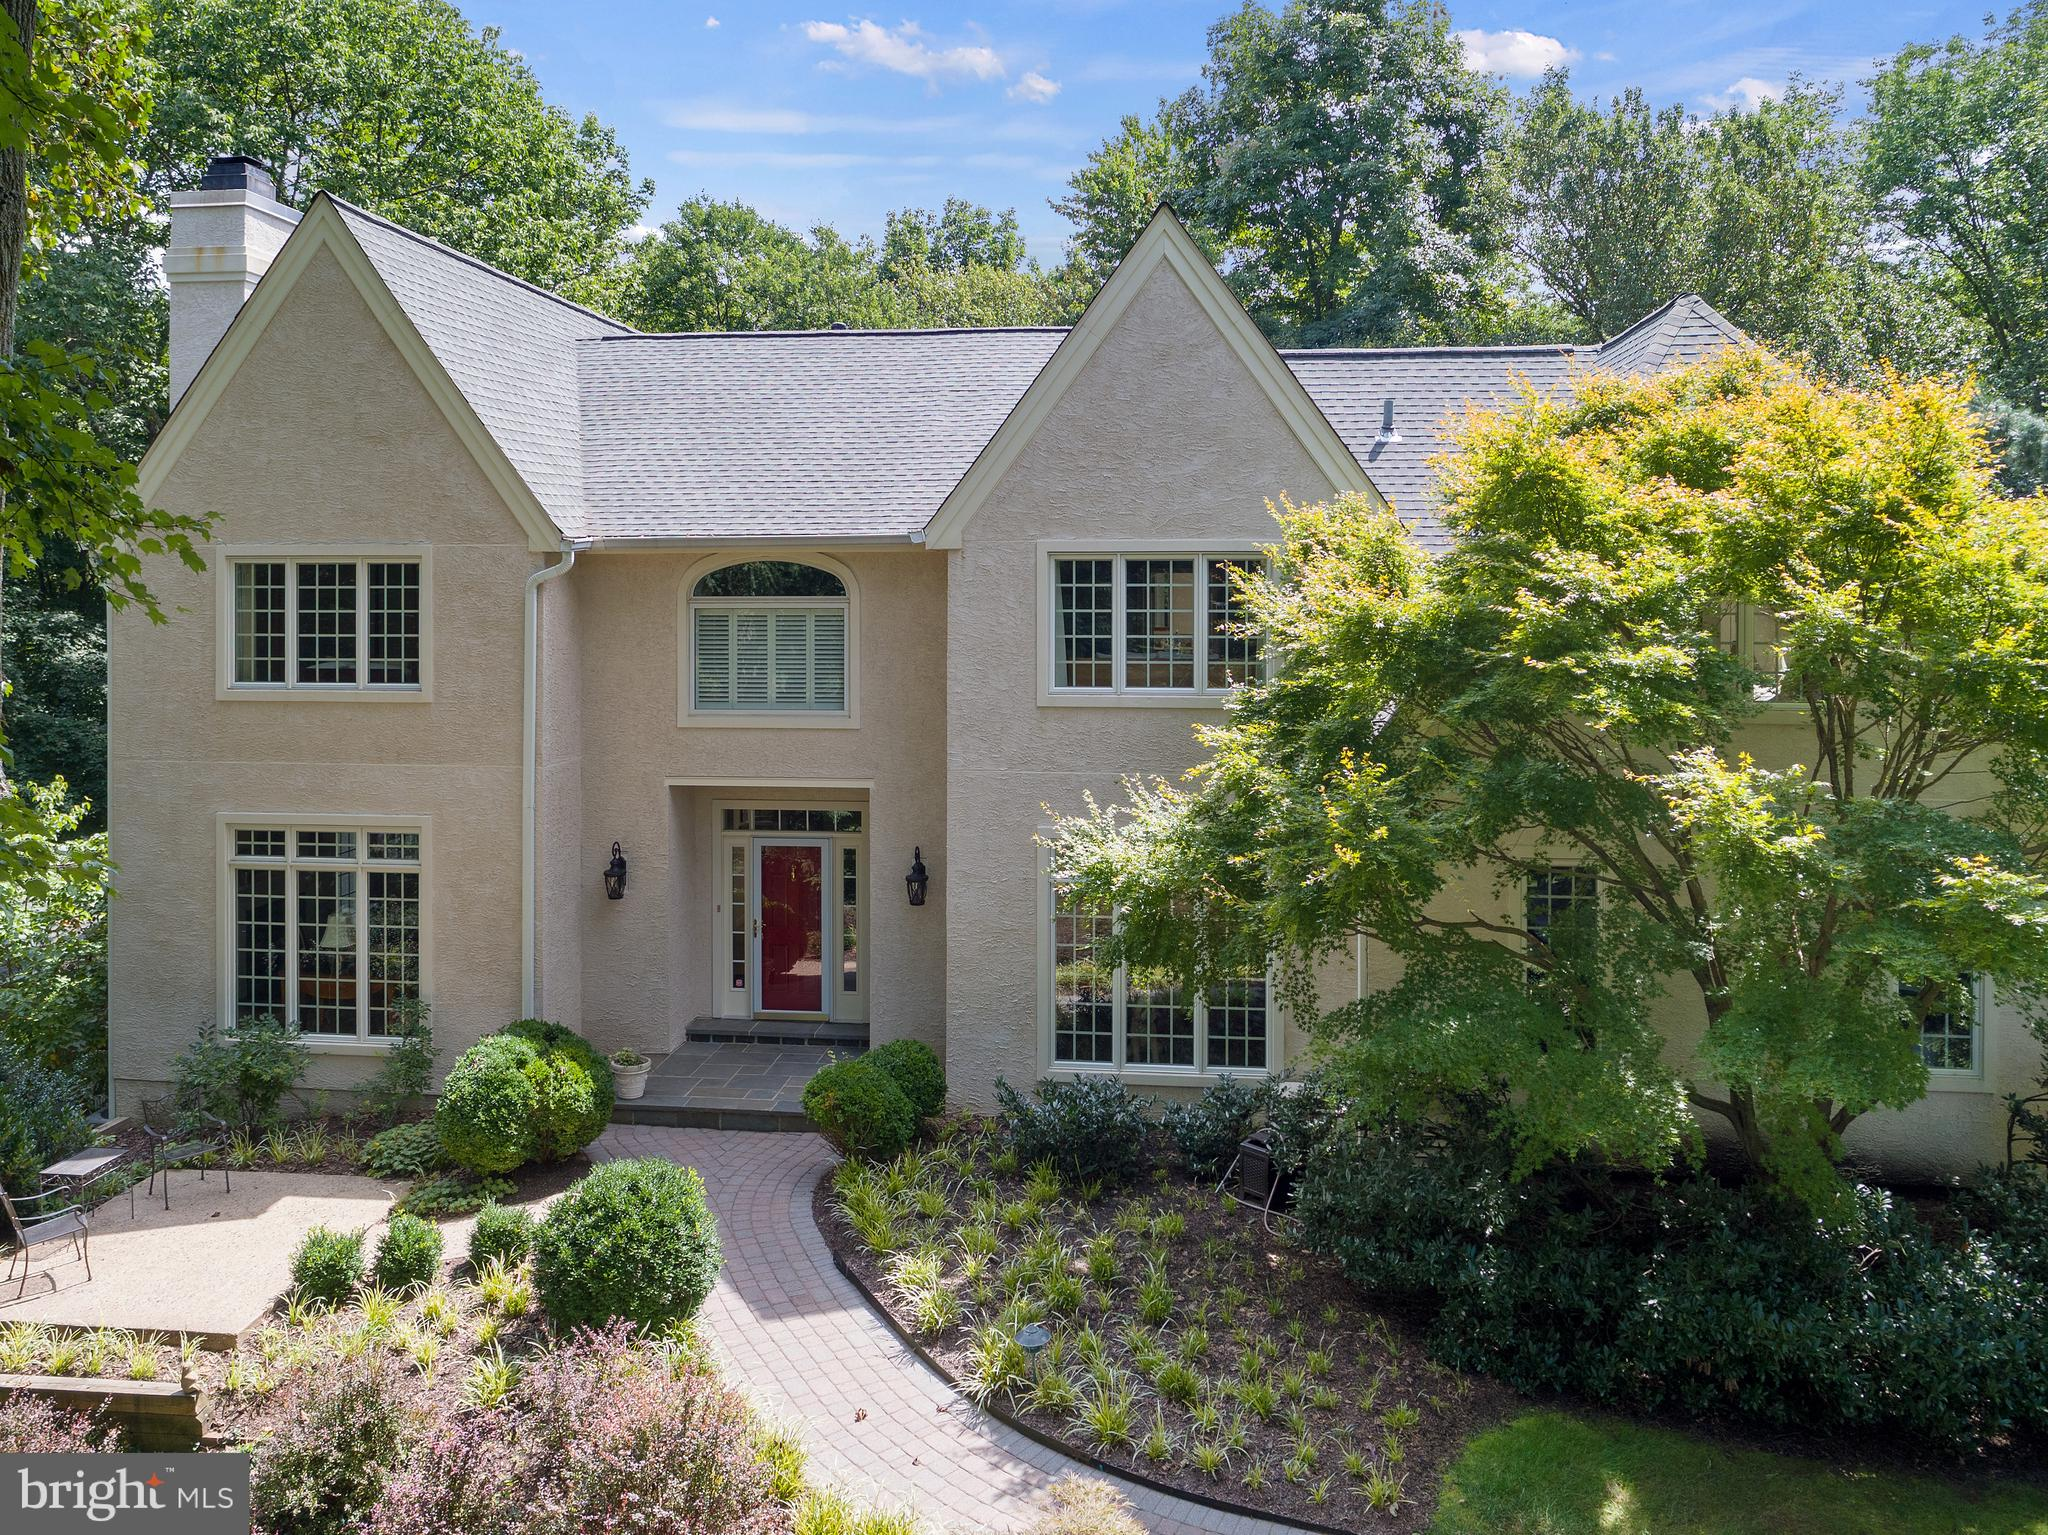 24 RIDINGS WAY, CHADDS FORD, PA 19317